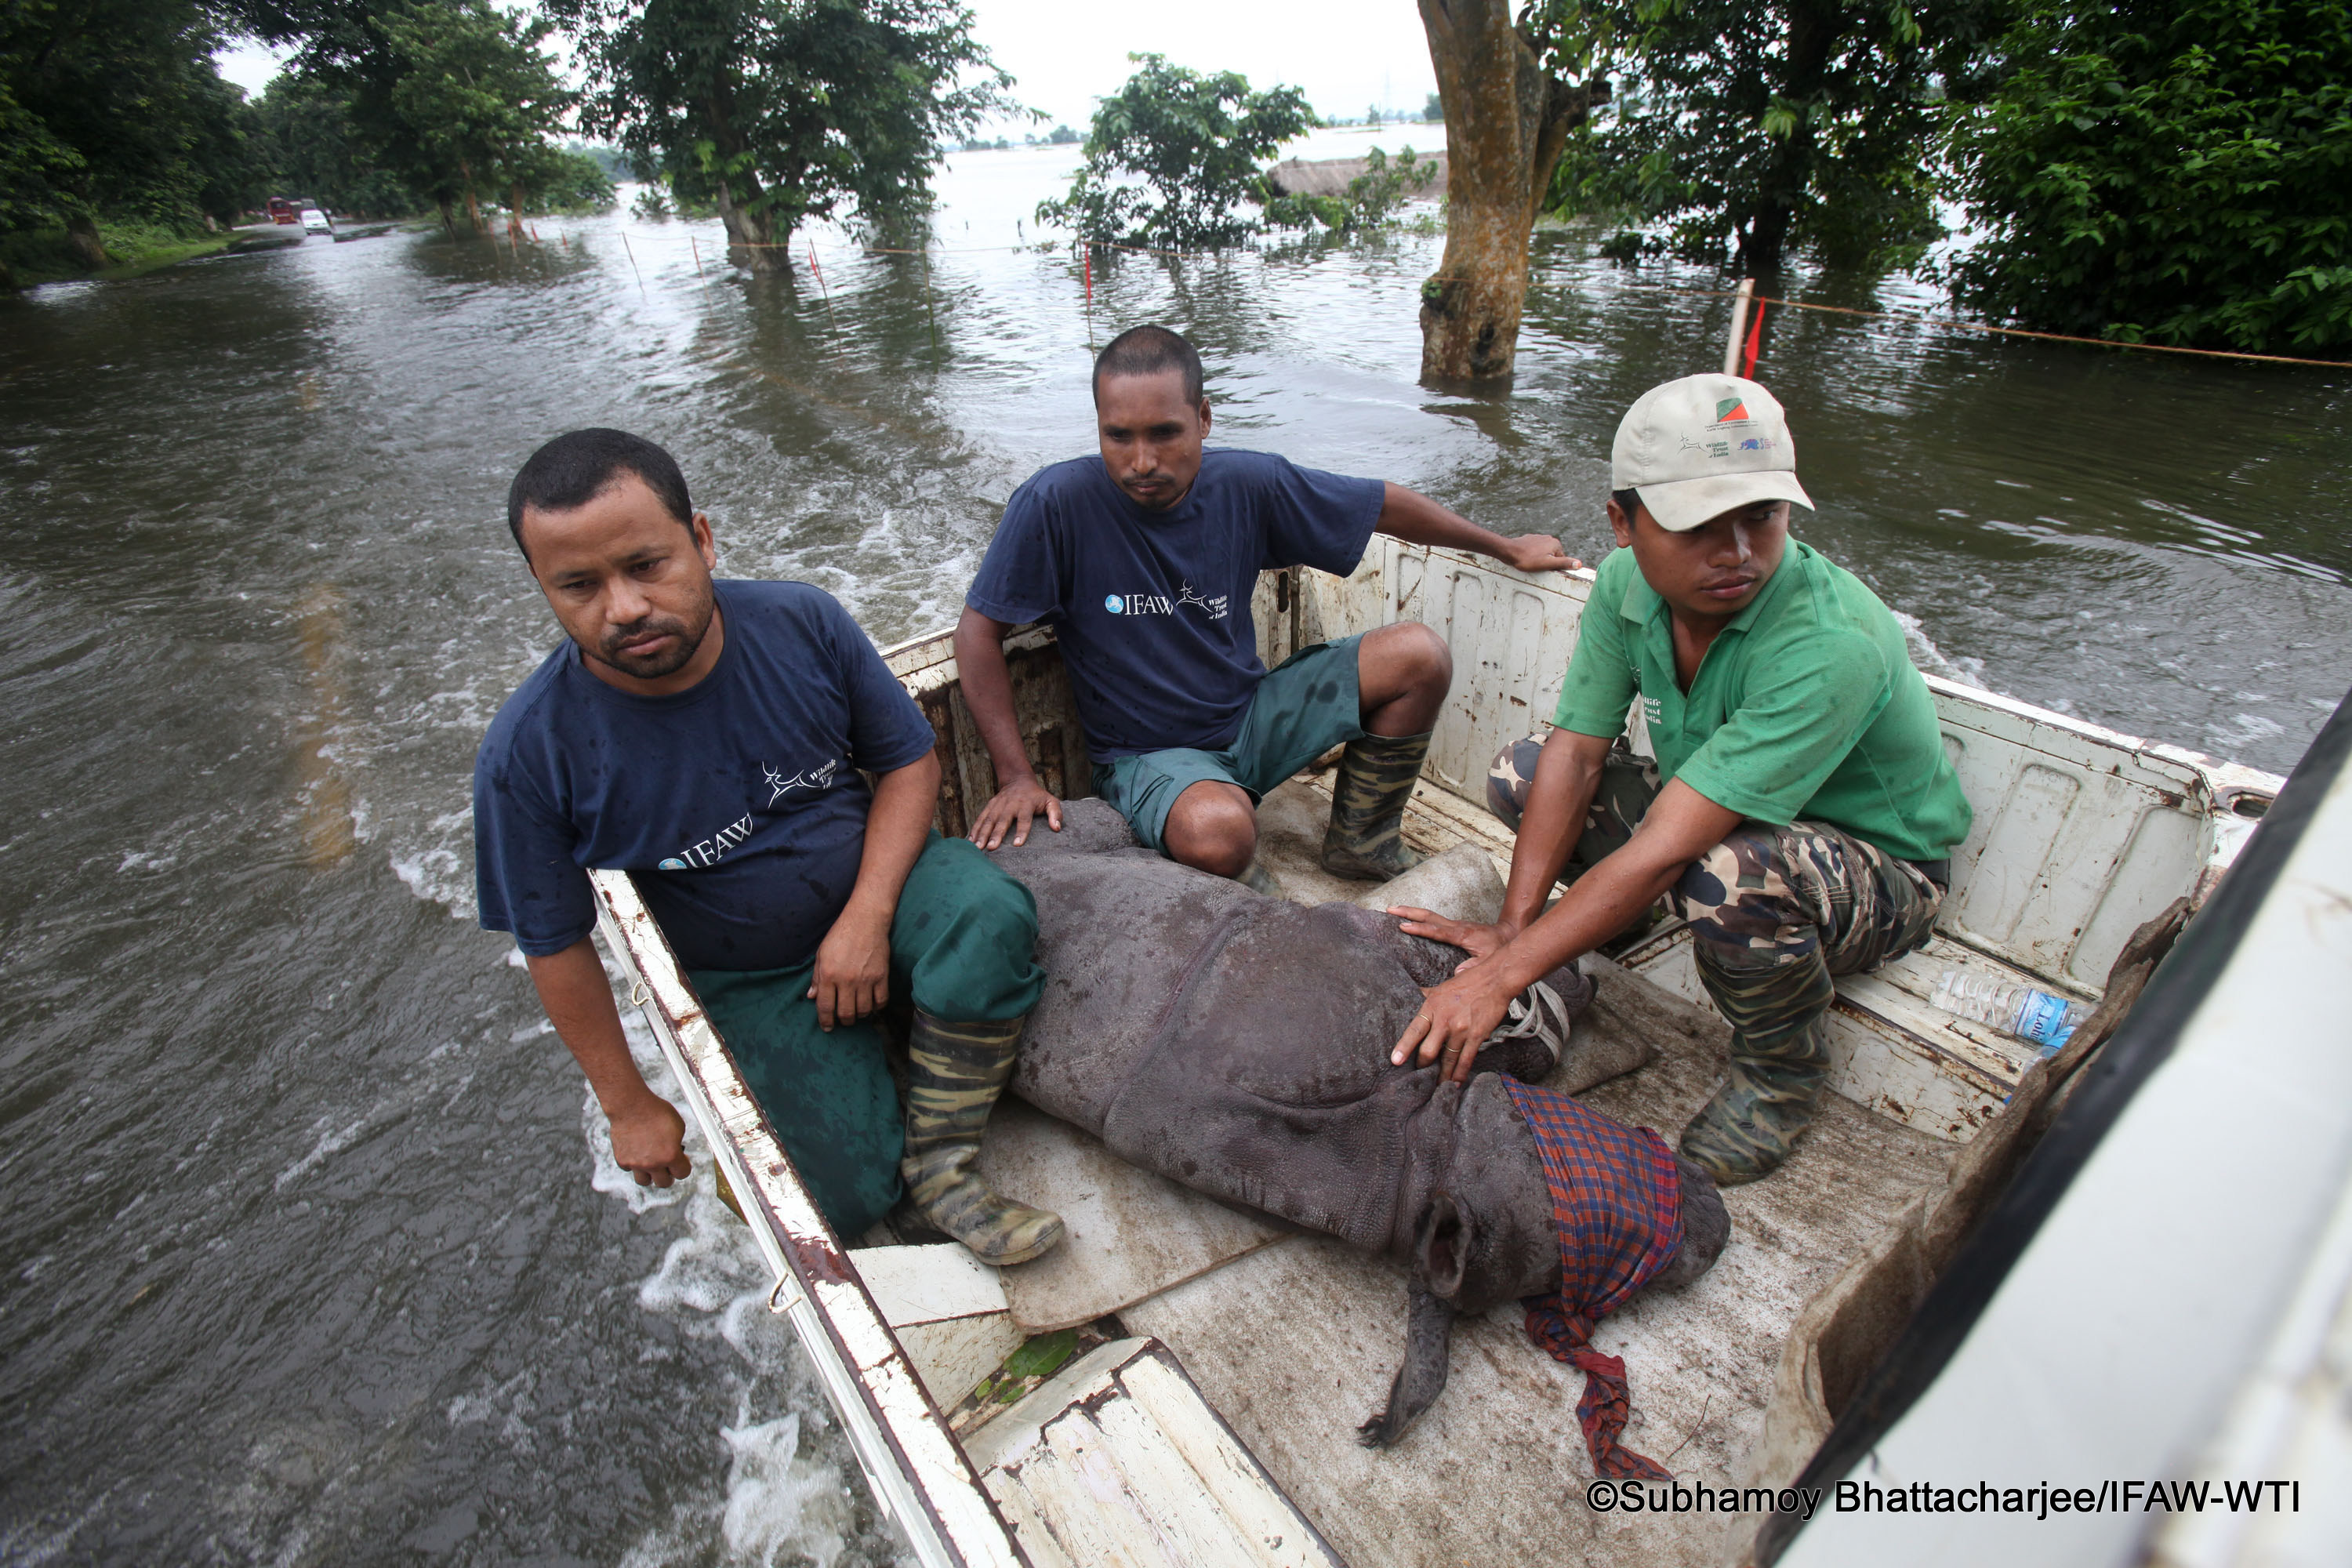 IFAW-WTI MVS team rescuing a rhino calf from flood affected Sildubi village under Bagori forest range of Kaziranga with the help of Kaziranga forest staff, local villagers on Wednesday,27th July 2016. Photo: Subhamoy Bhattacharjee/IFAW-WTI